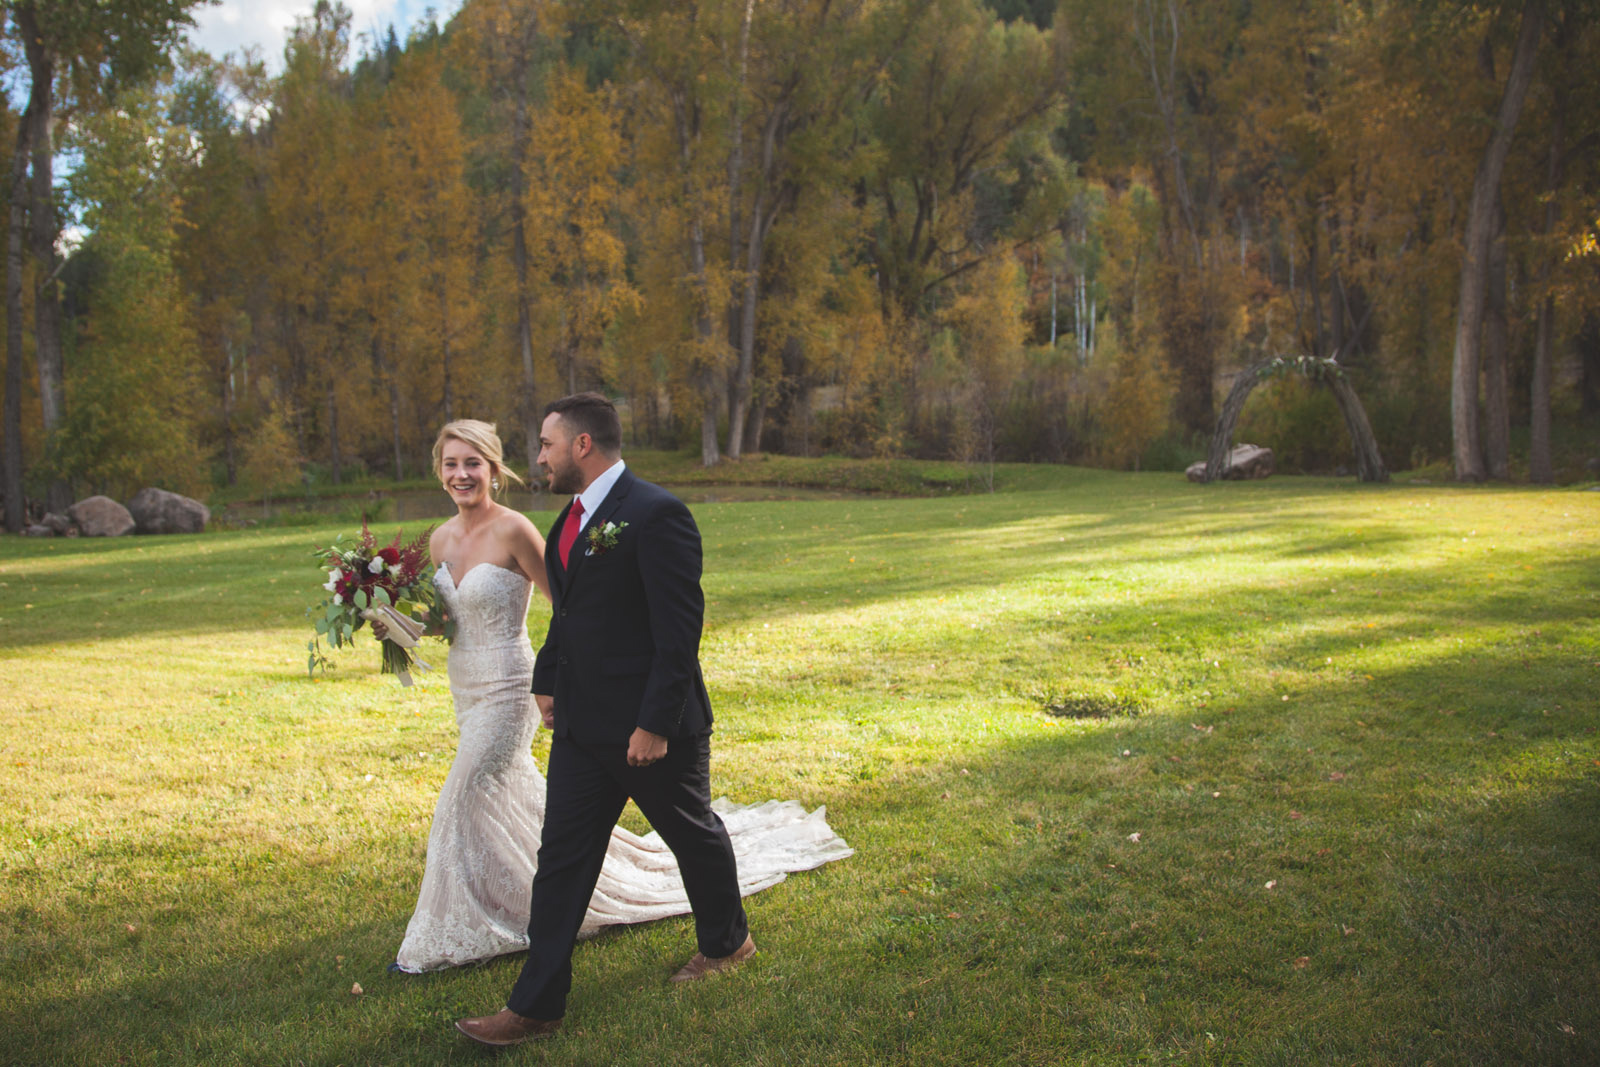 102-bride-and-groom-first-kiss-during-private-elopement-wedding-ceremony-in-durango-co-forest